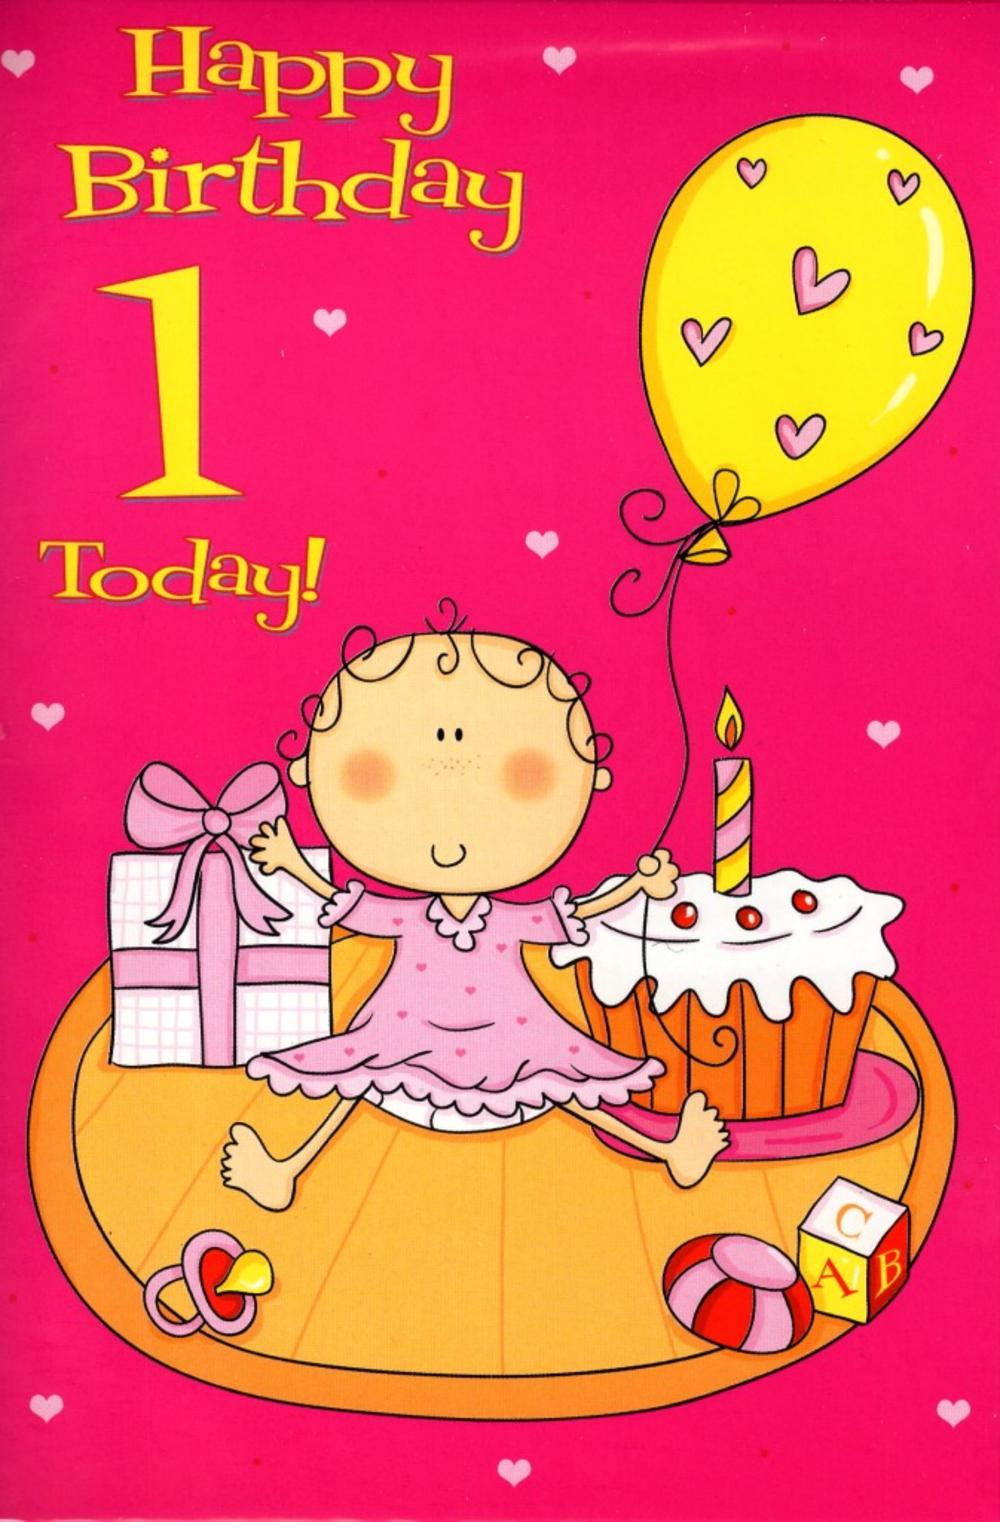 1 Today Special Age Baby 1st Birthday Card | Cards | Love ...